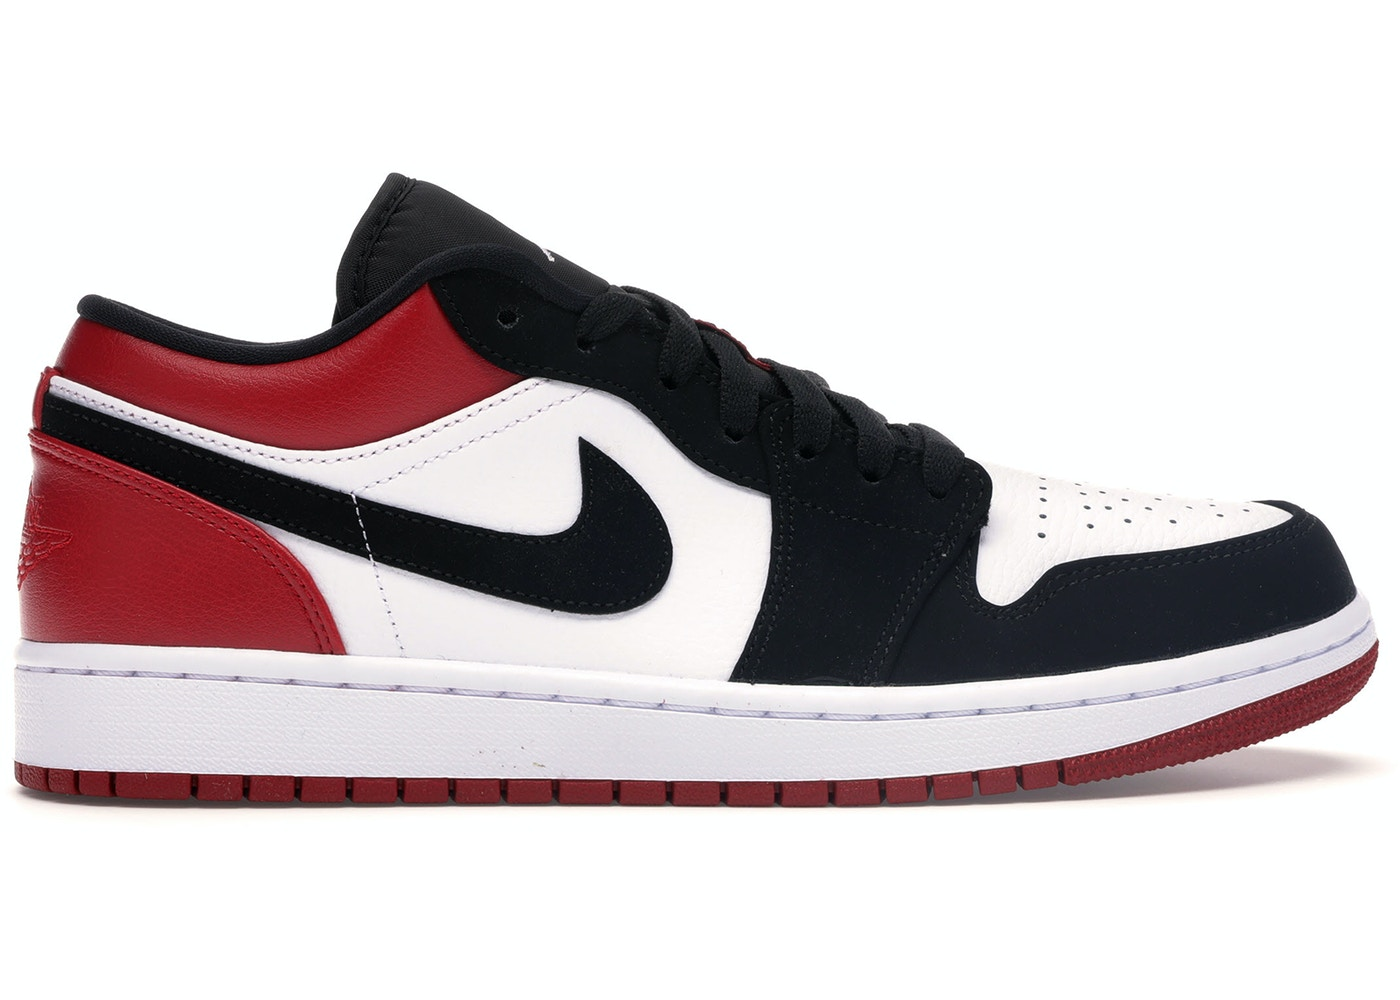 size 40 ccb77 70d35 Jordan 1 Low Black Toe - 553558-116